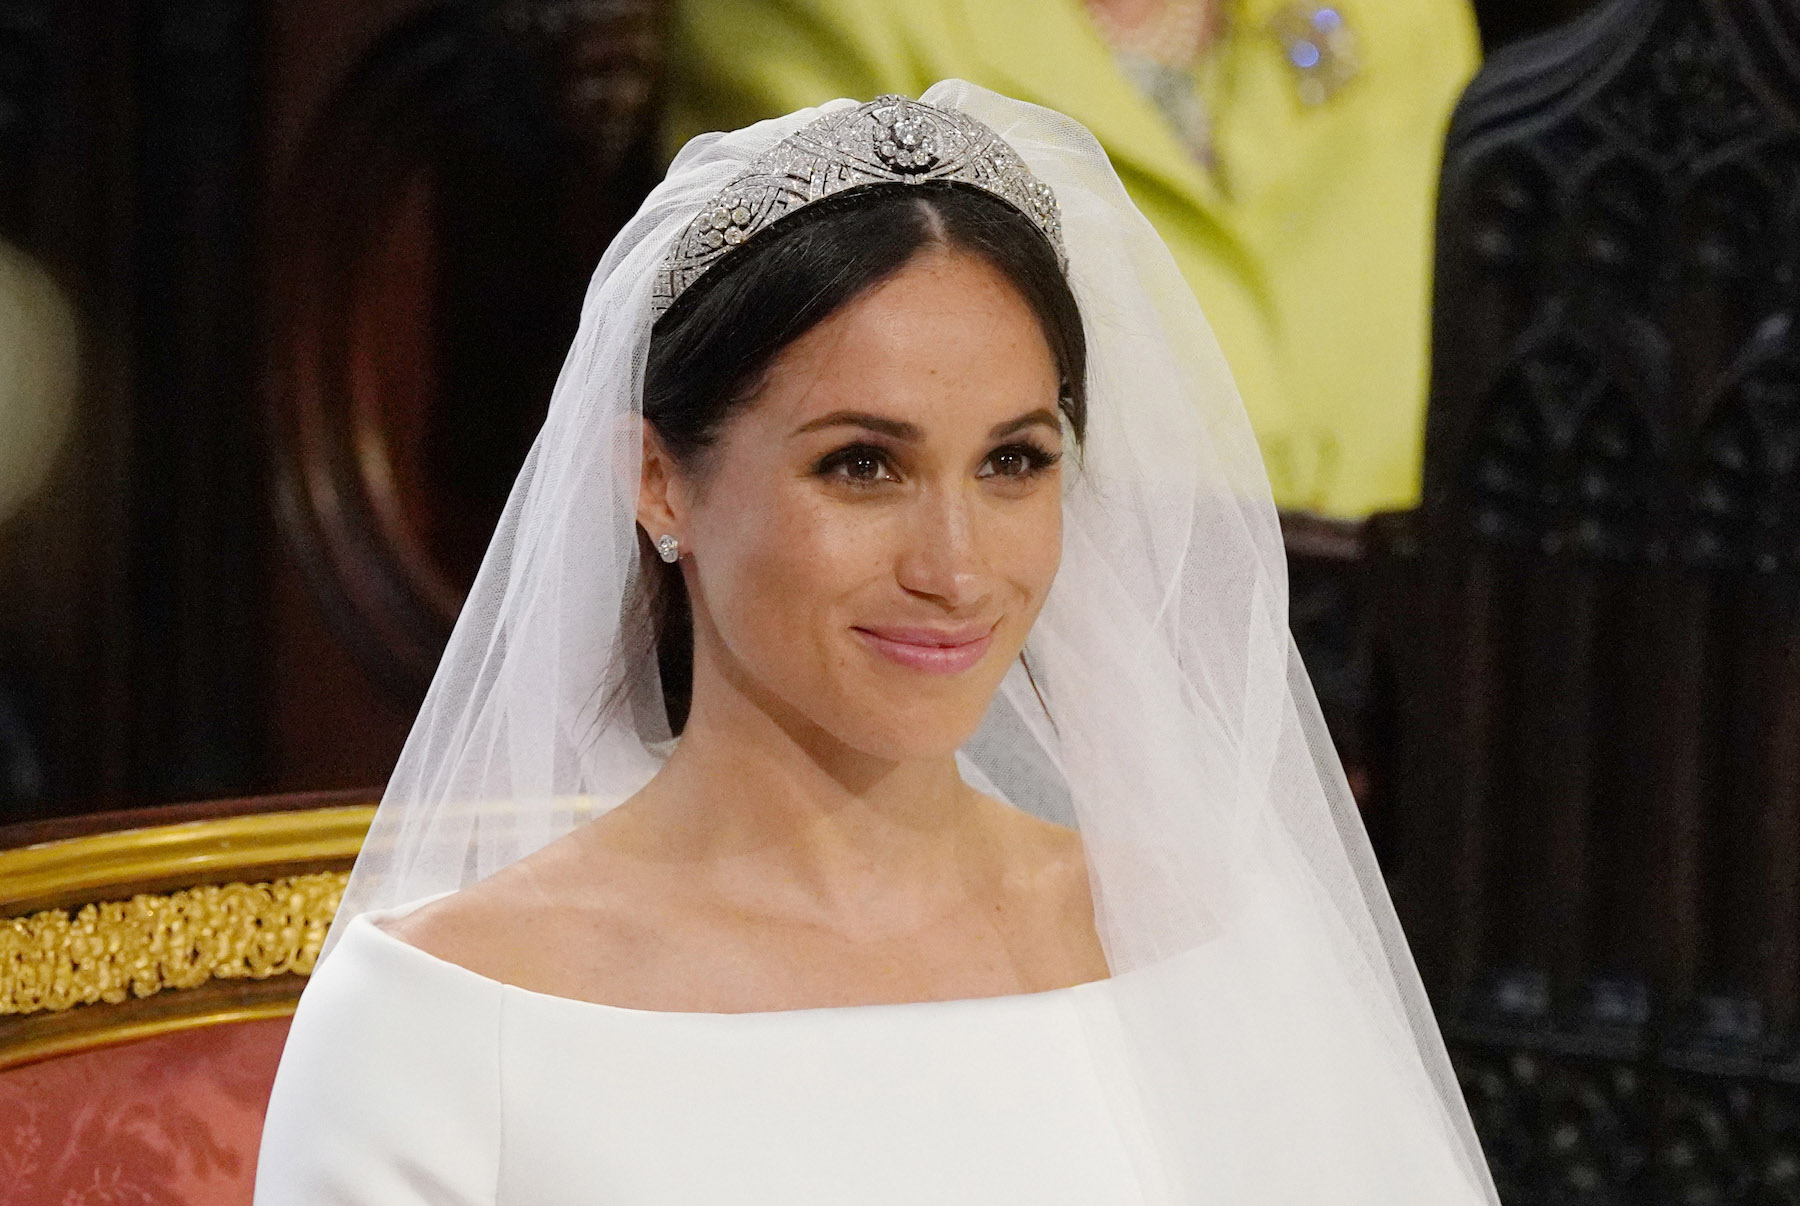 How to Get Meghan Markle's Glowy Bridal Beauty Look